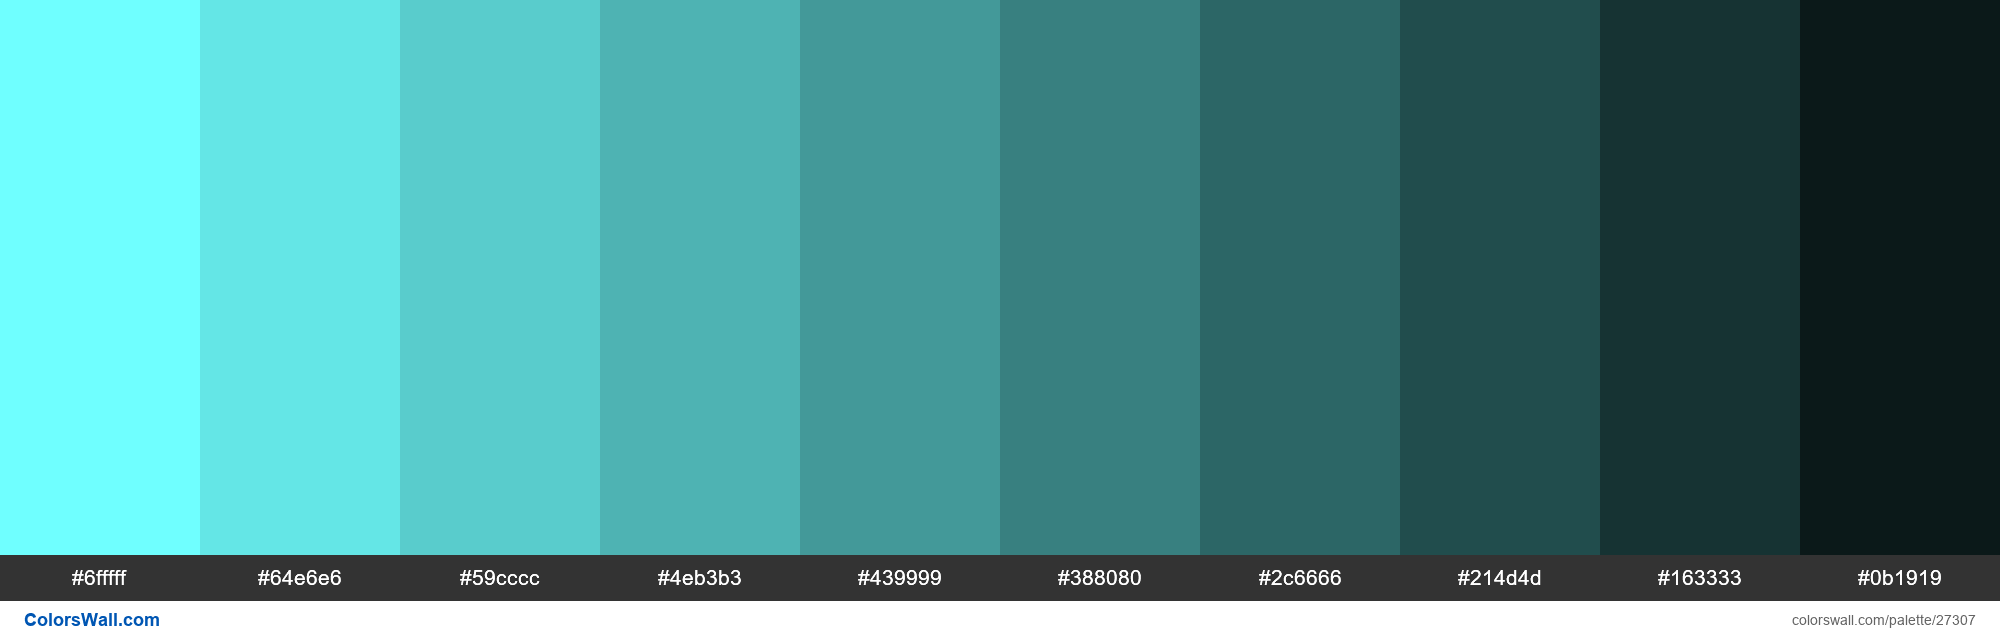 Shades of Baby Blue color #6FFFFF hex - #27307